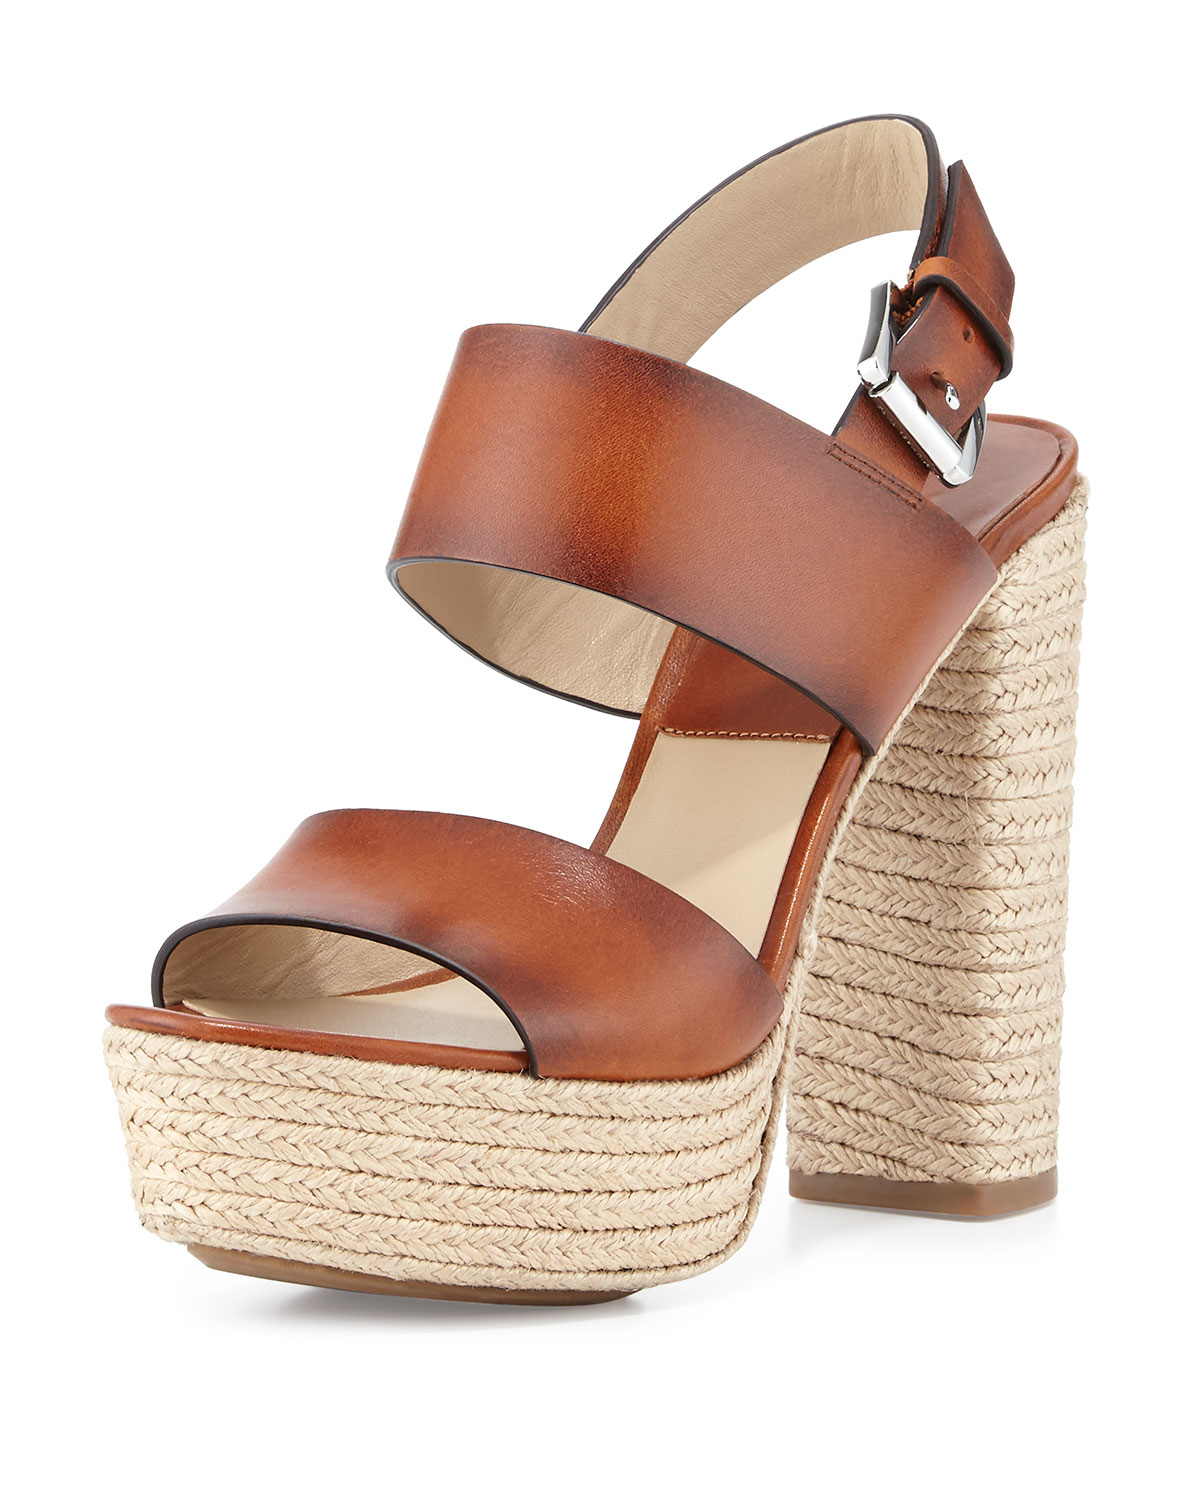 Summer Leather Jute Sandal, Luggage